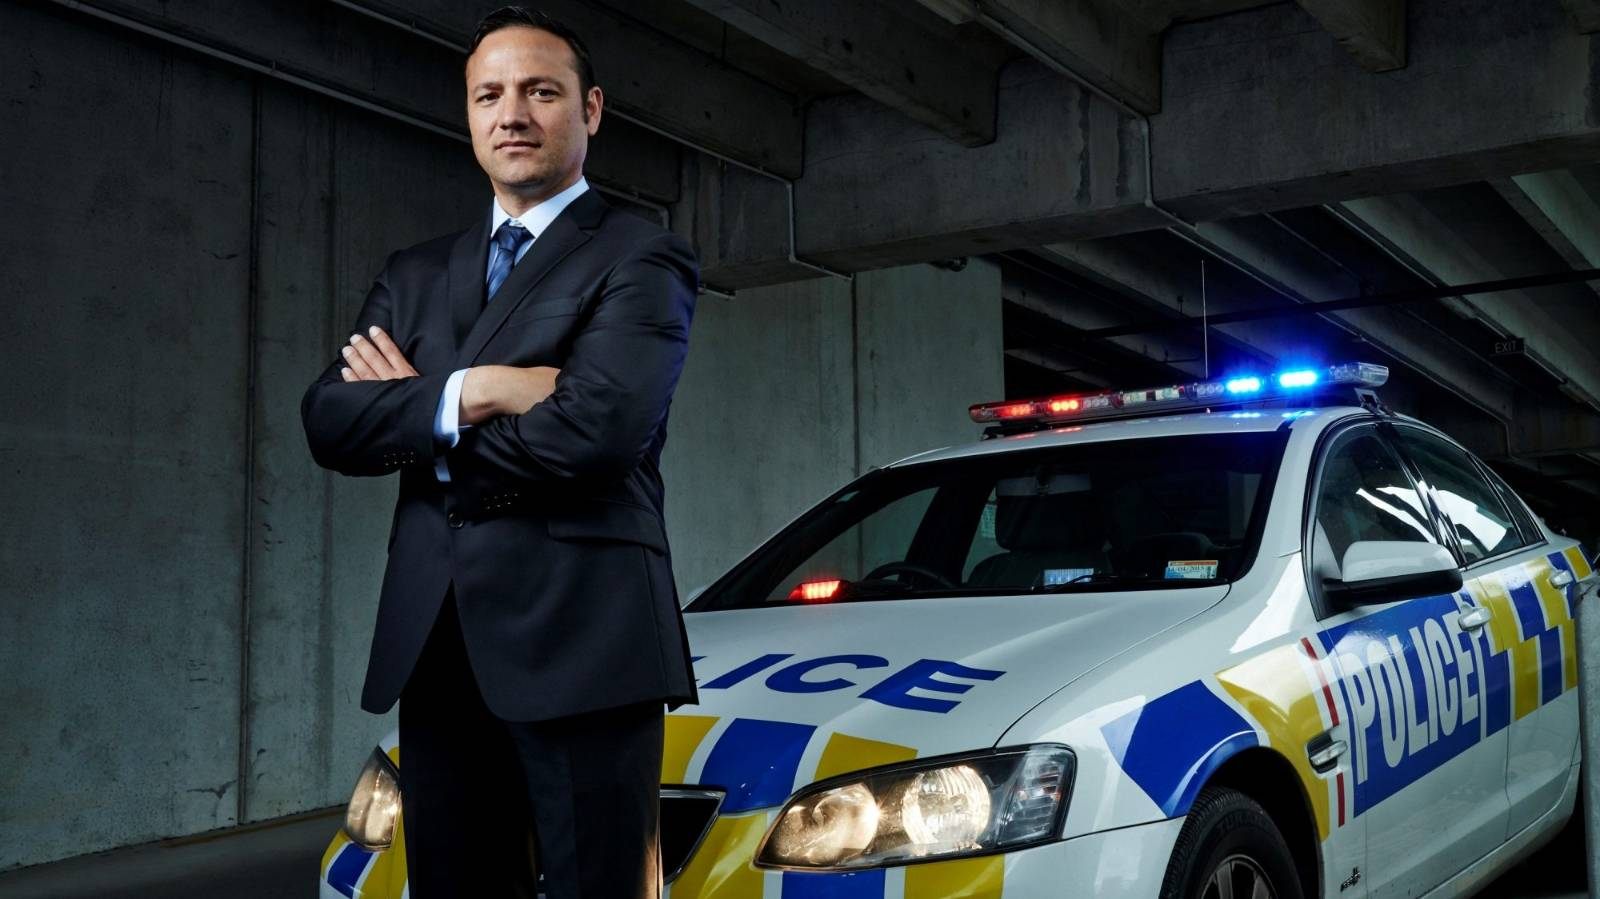 Police Ten 7 review blames 'baggage' for racism allegations